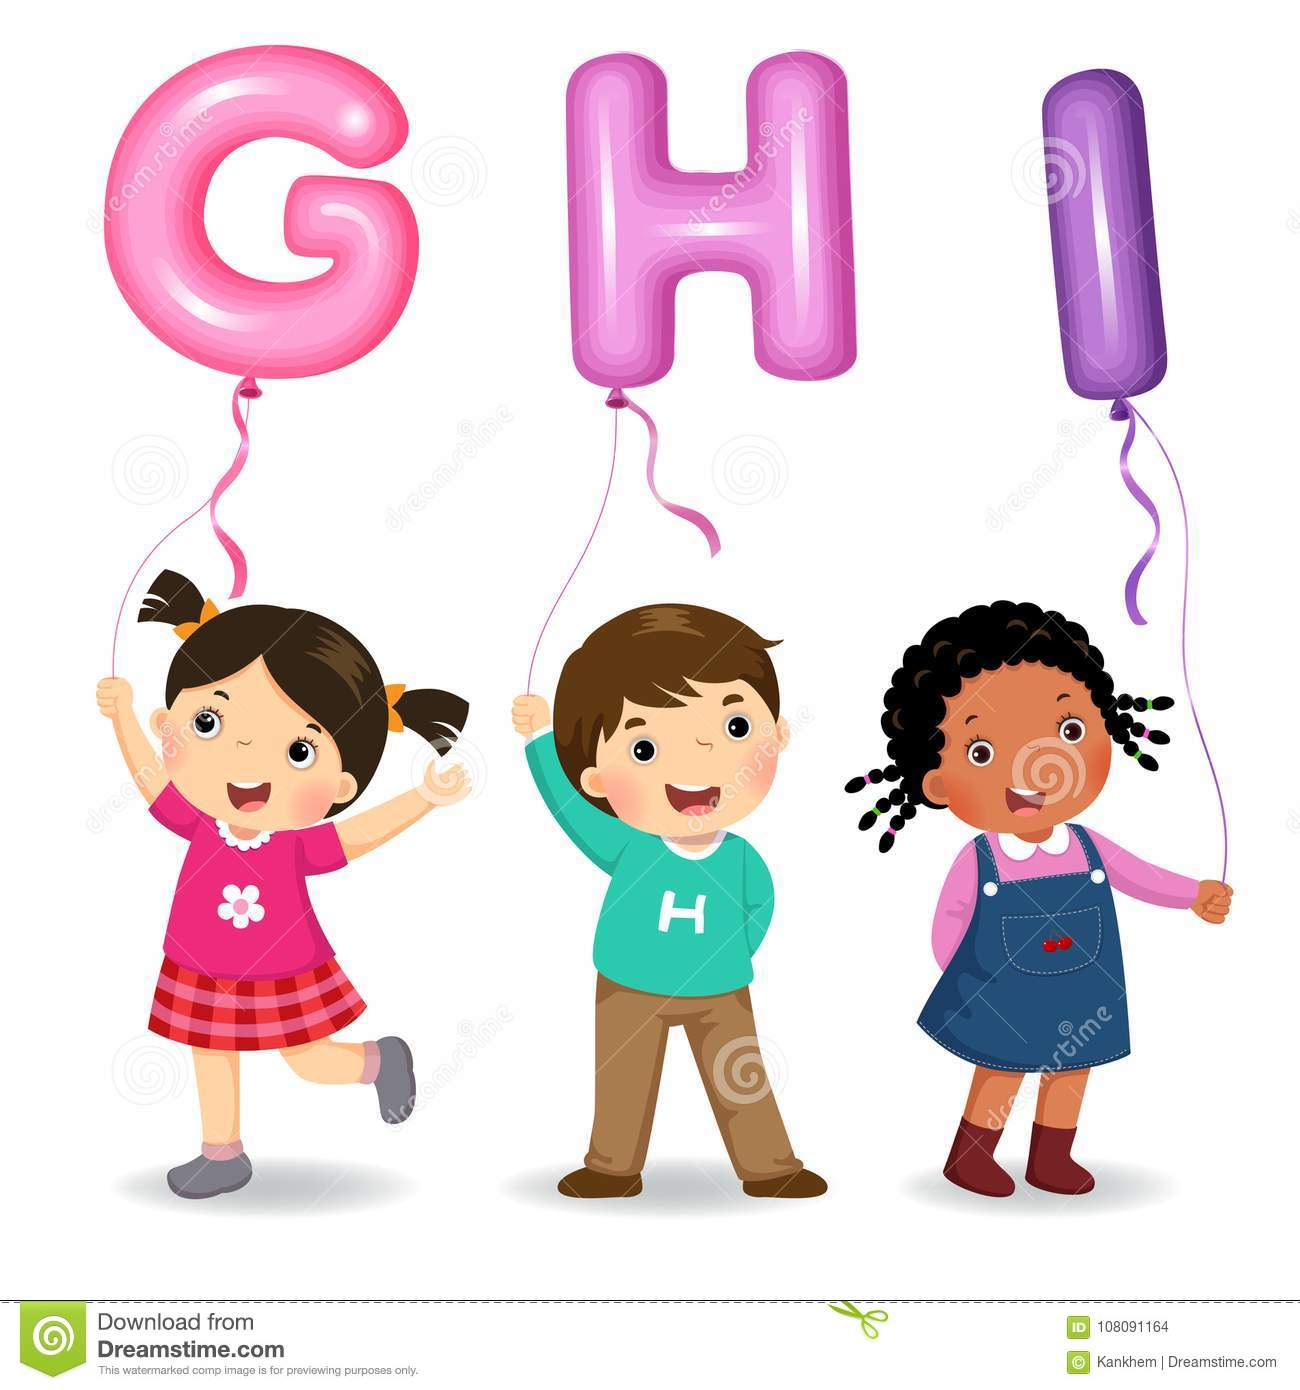 Cartoon kids holding letter GHI shaped balloons